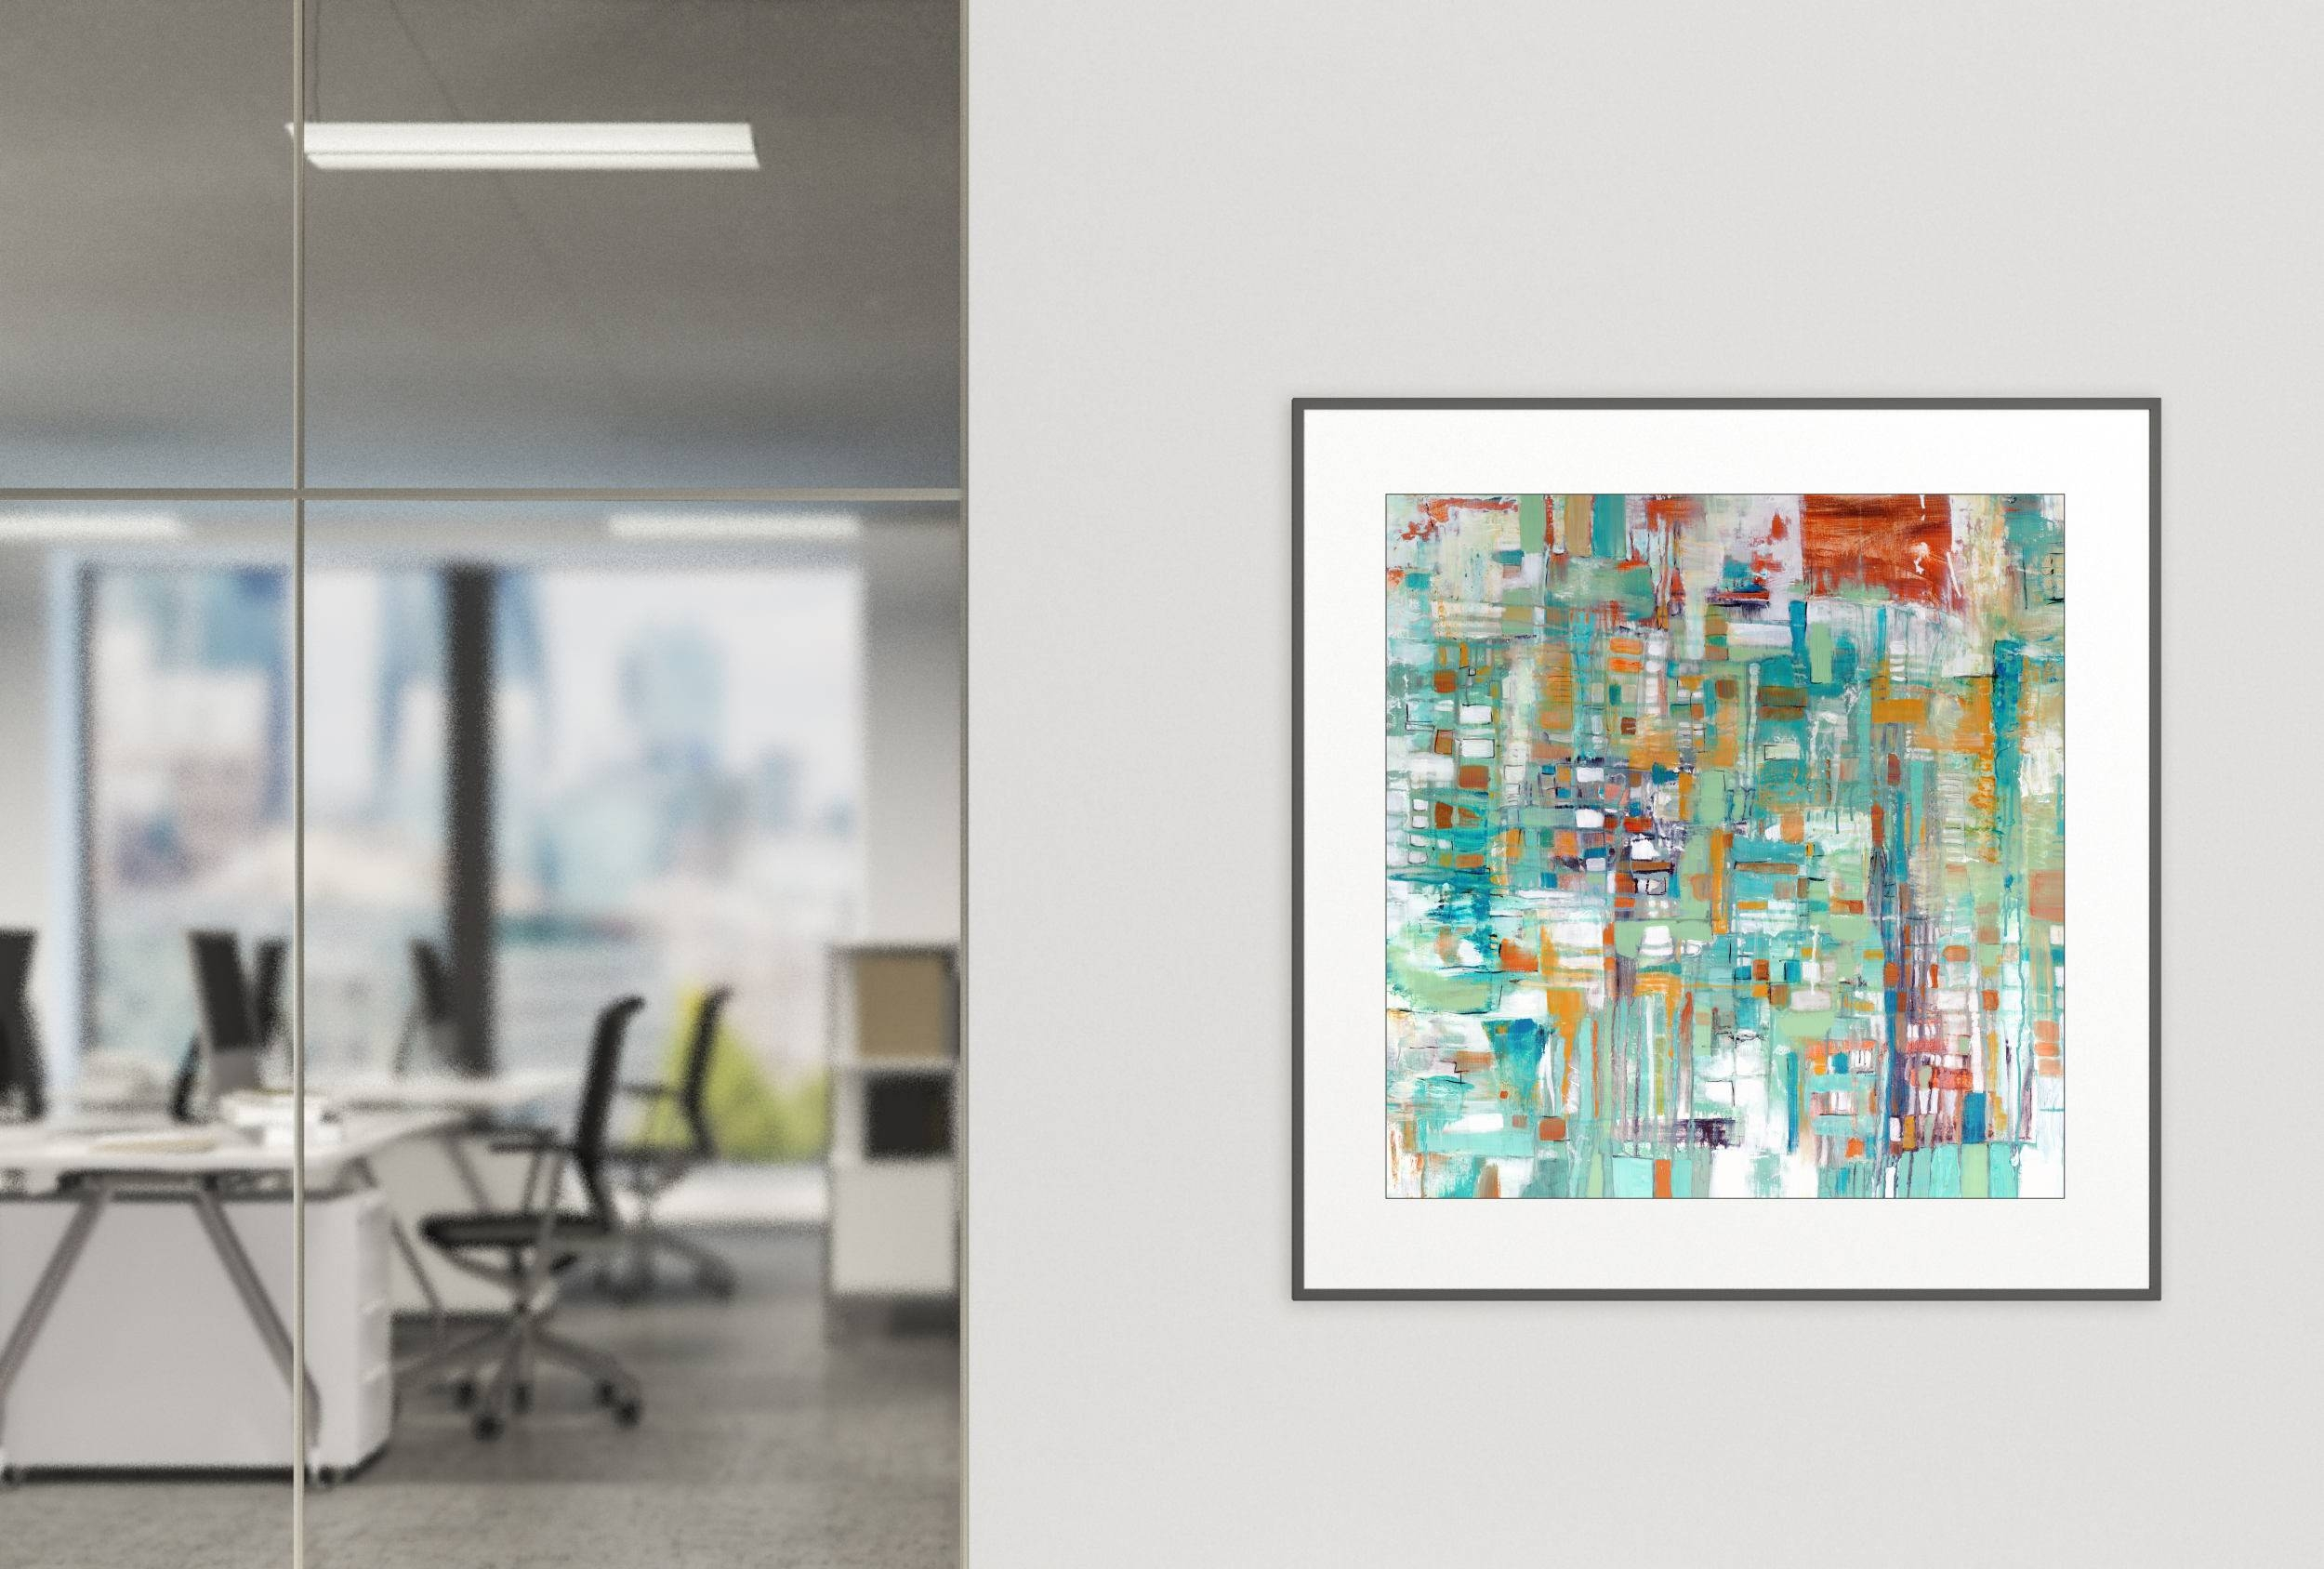 Gallery Art Print, Commercial Abstract Art Print, Hotel Wall Art Inside Most Recently Released Commercial Wall Art (View 10 of 20)